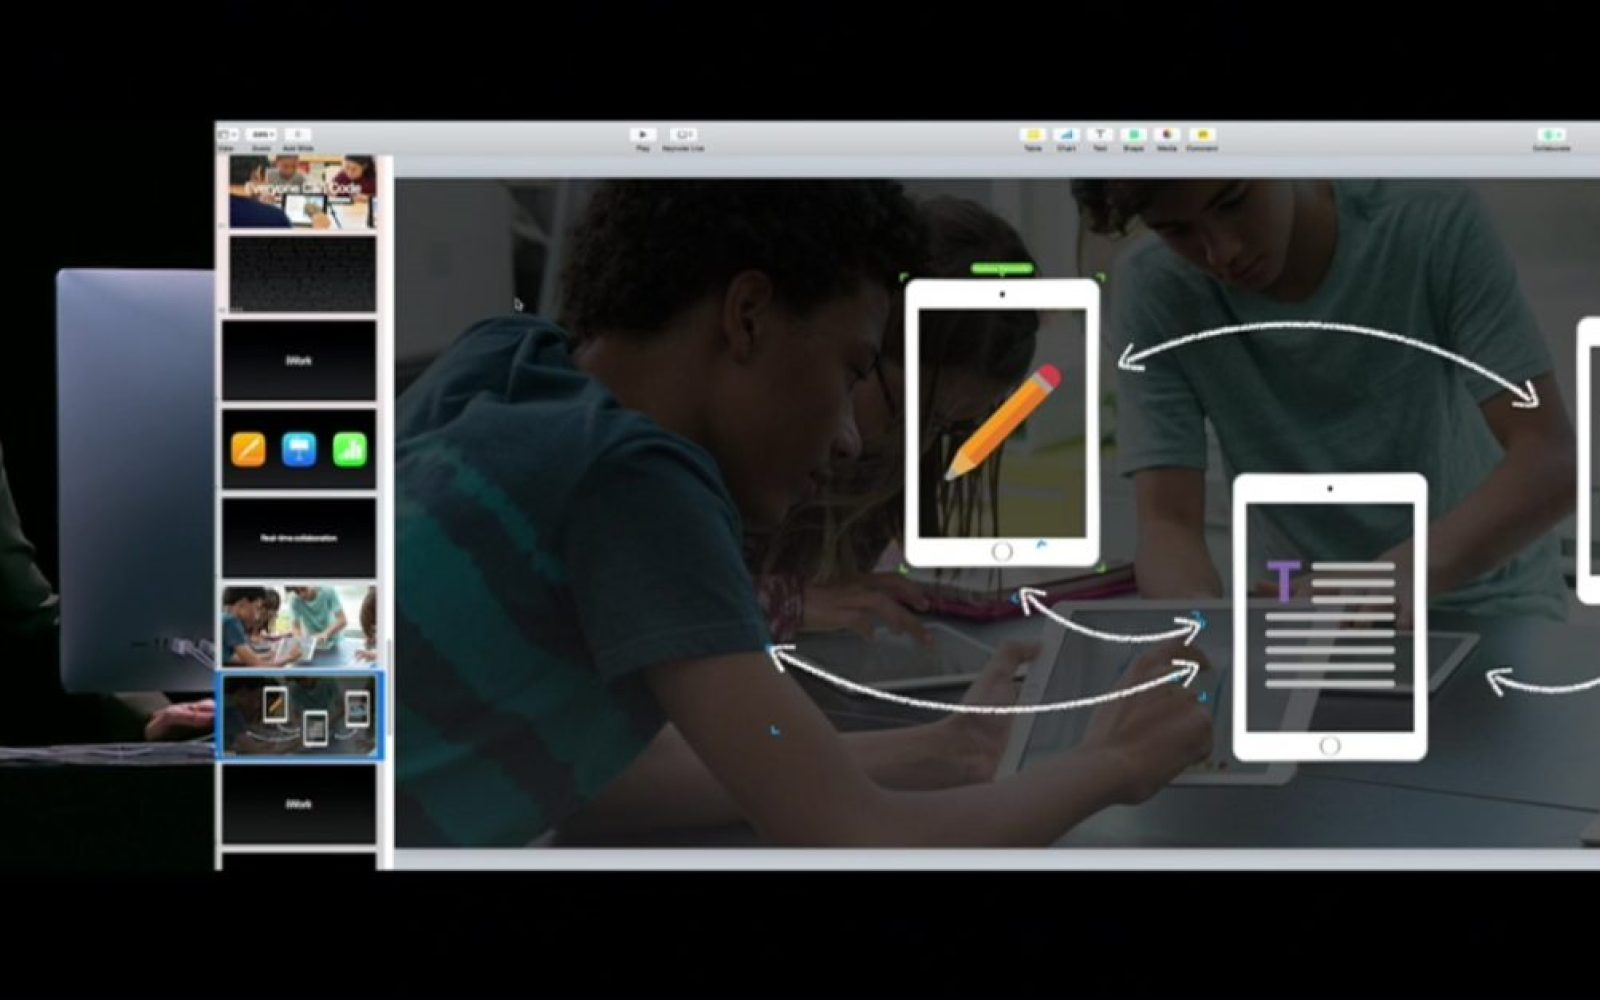 Apple releases iWork for iOS with real-time collaboration, Swift Playgrounds coding app for iPad